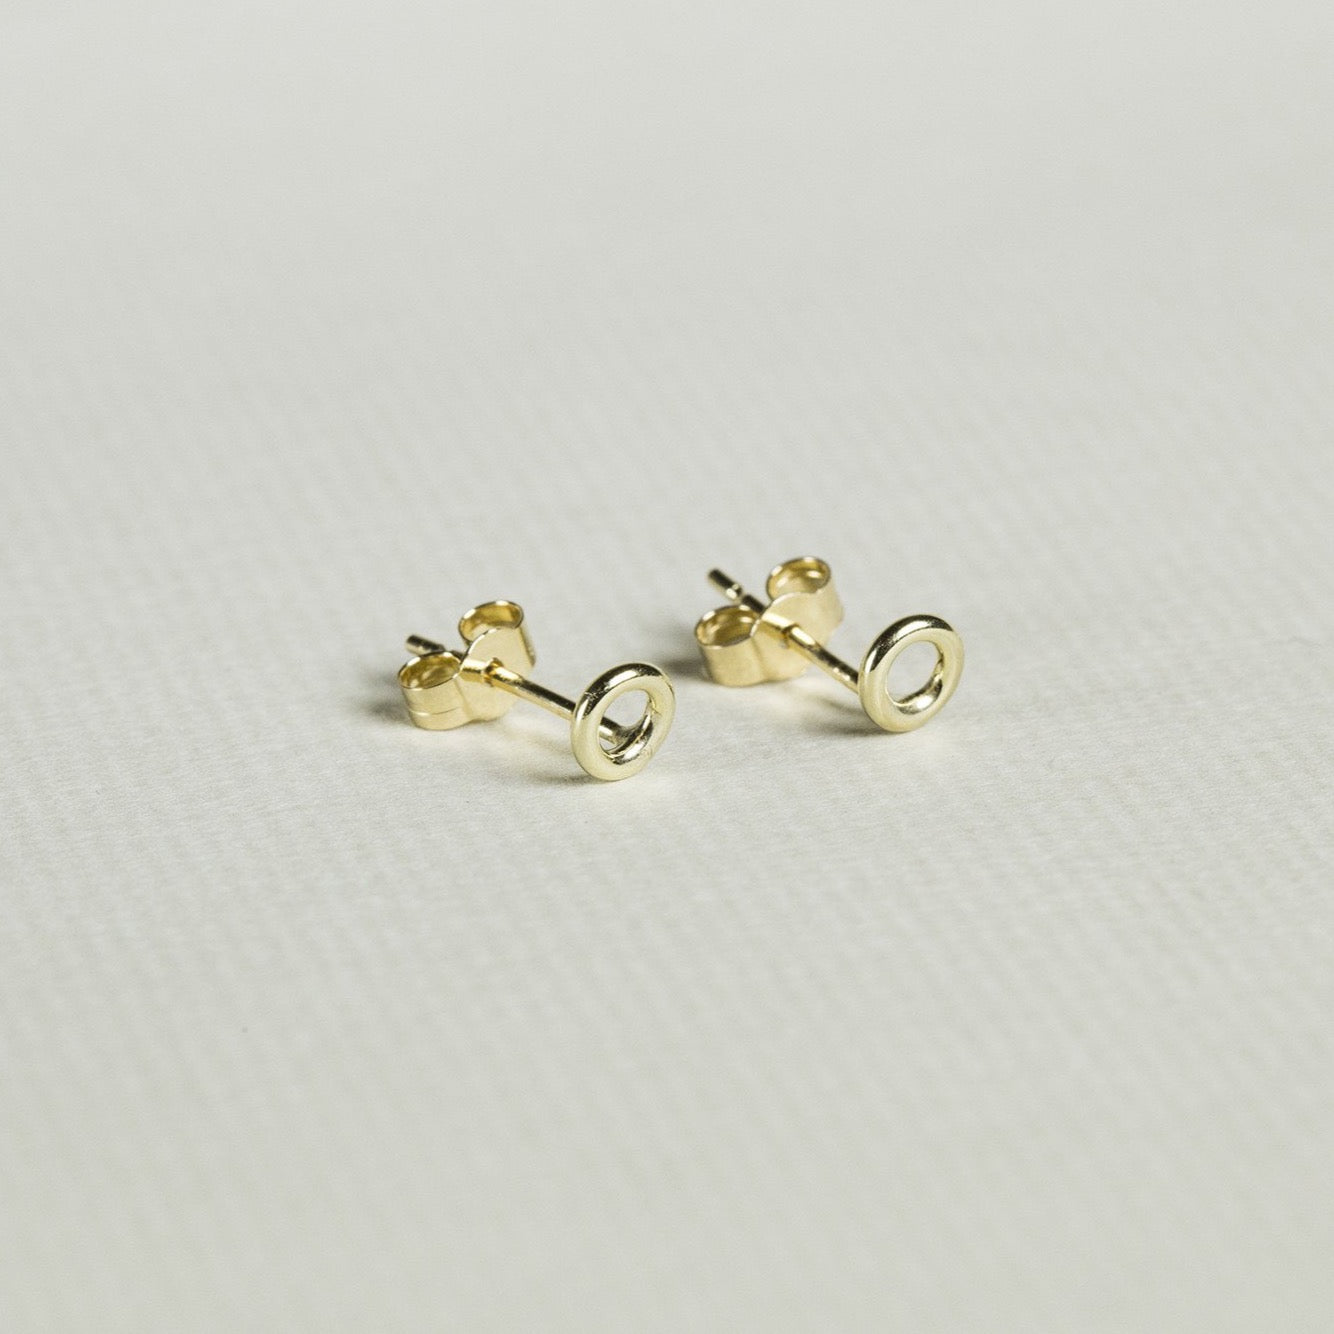 real gold, subtle, geometric - modern 'halo' earrings